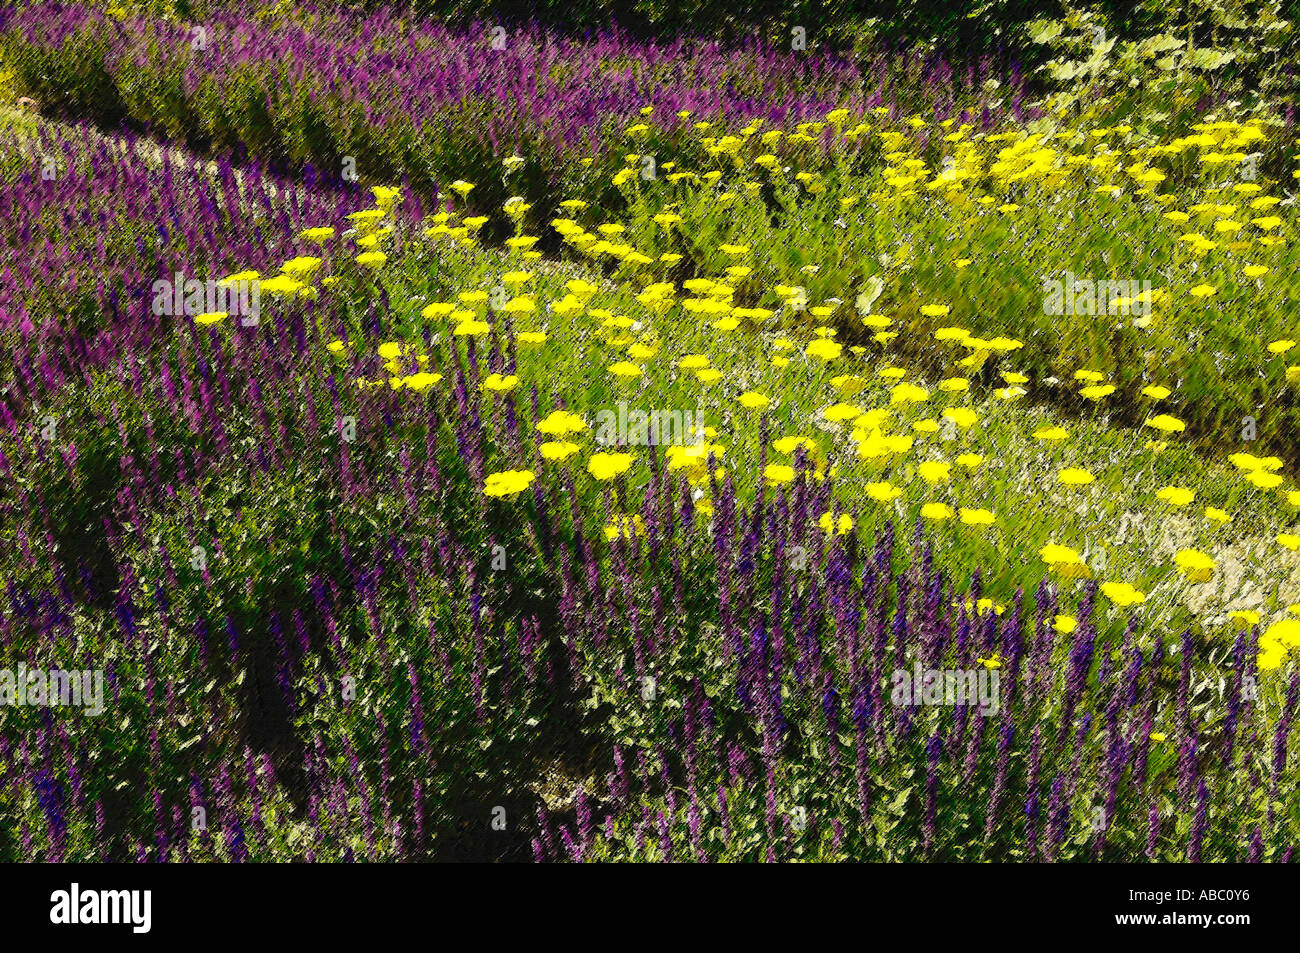 Flowers at the BUGA Munich 05, Photoshop-artistic-filter, - Stock Image